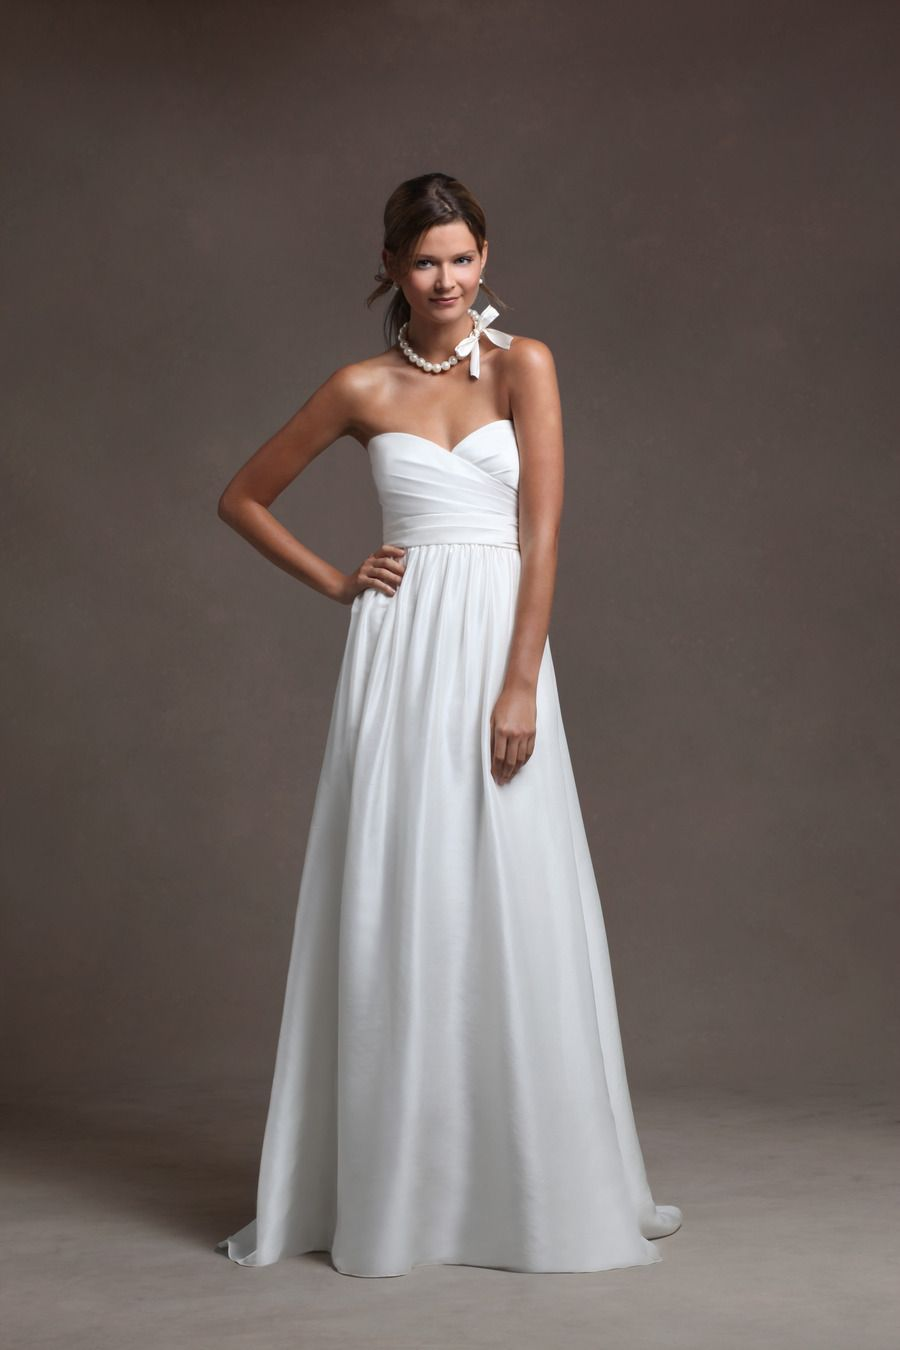 Dresses for a country wedding  Eastern Silk Shantung crisscross bodice featuring a beautiful